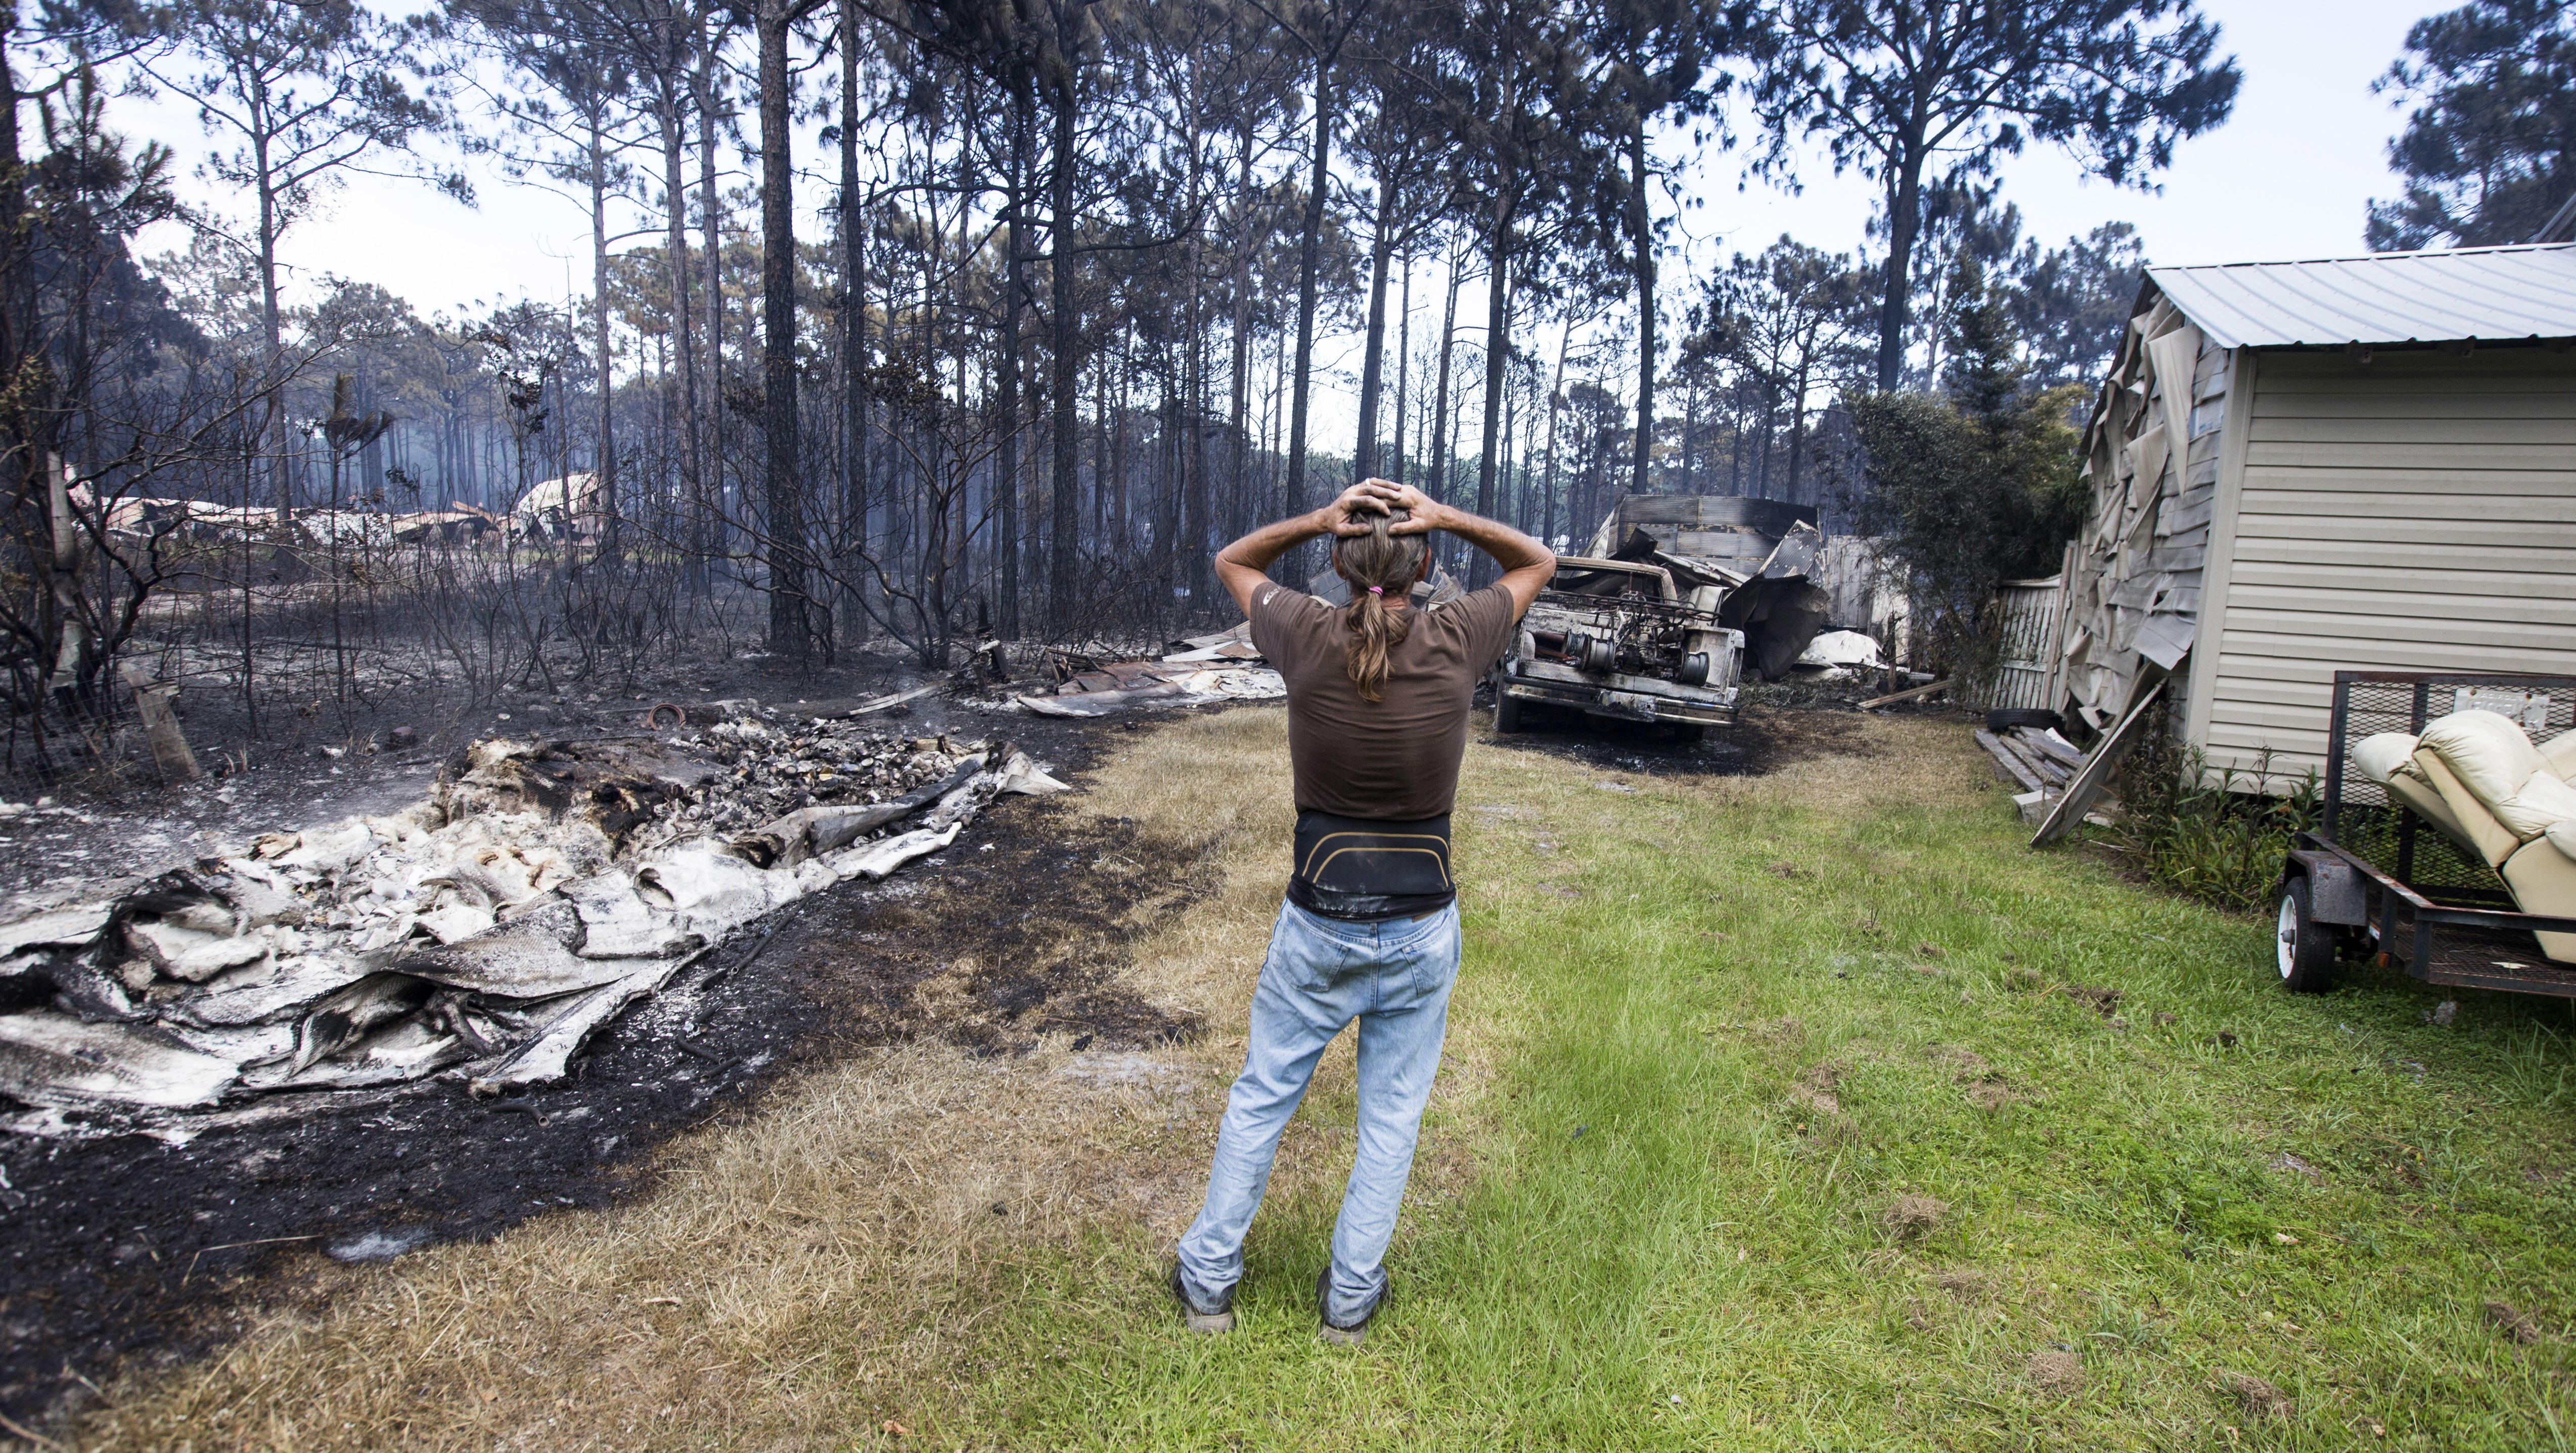 Florida Wildfire That Destroyed 36 Homes Was Sparked By Controlled